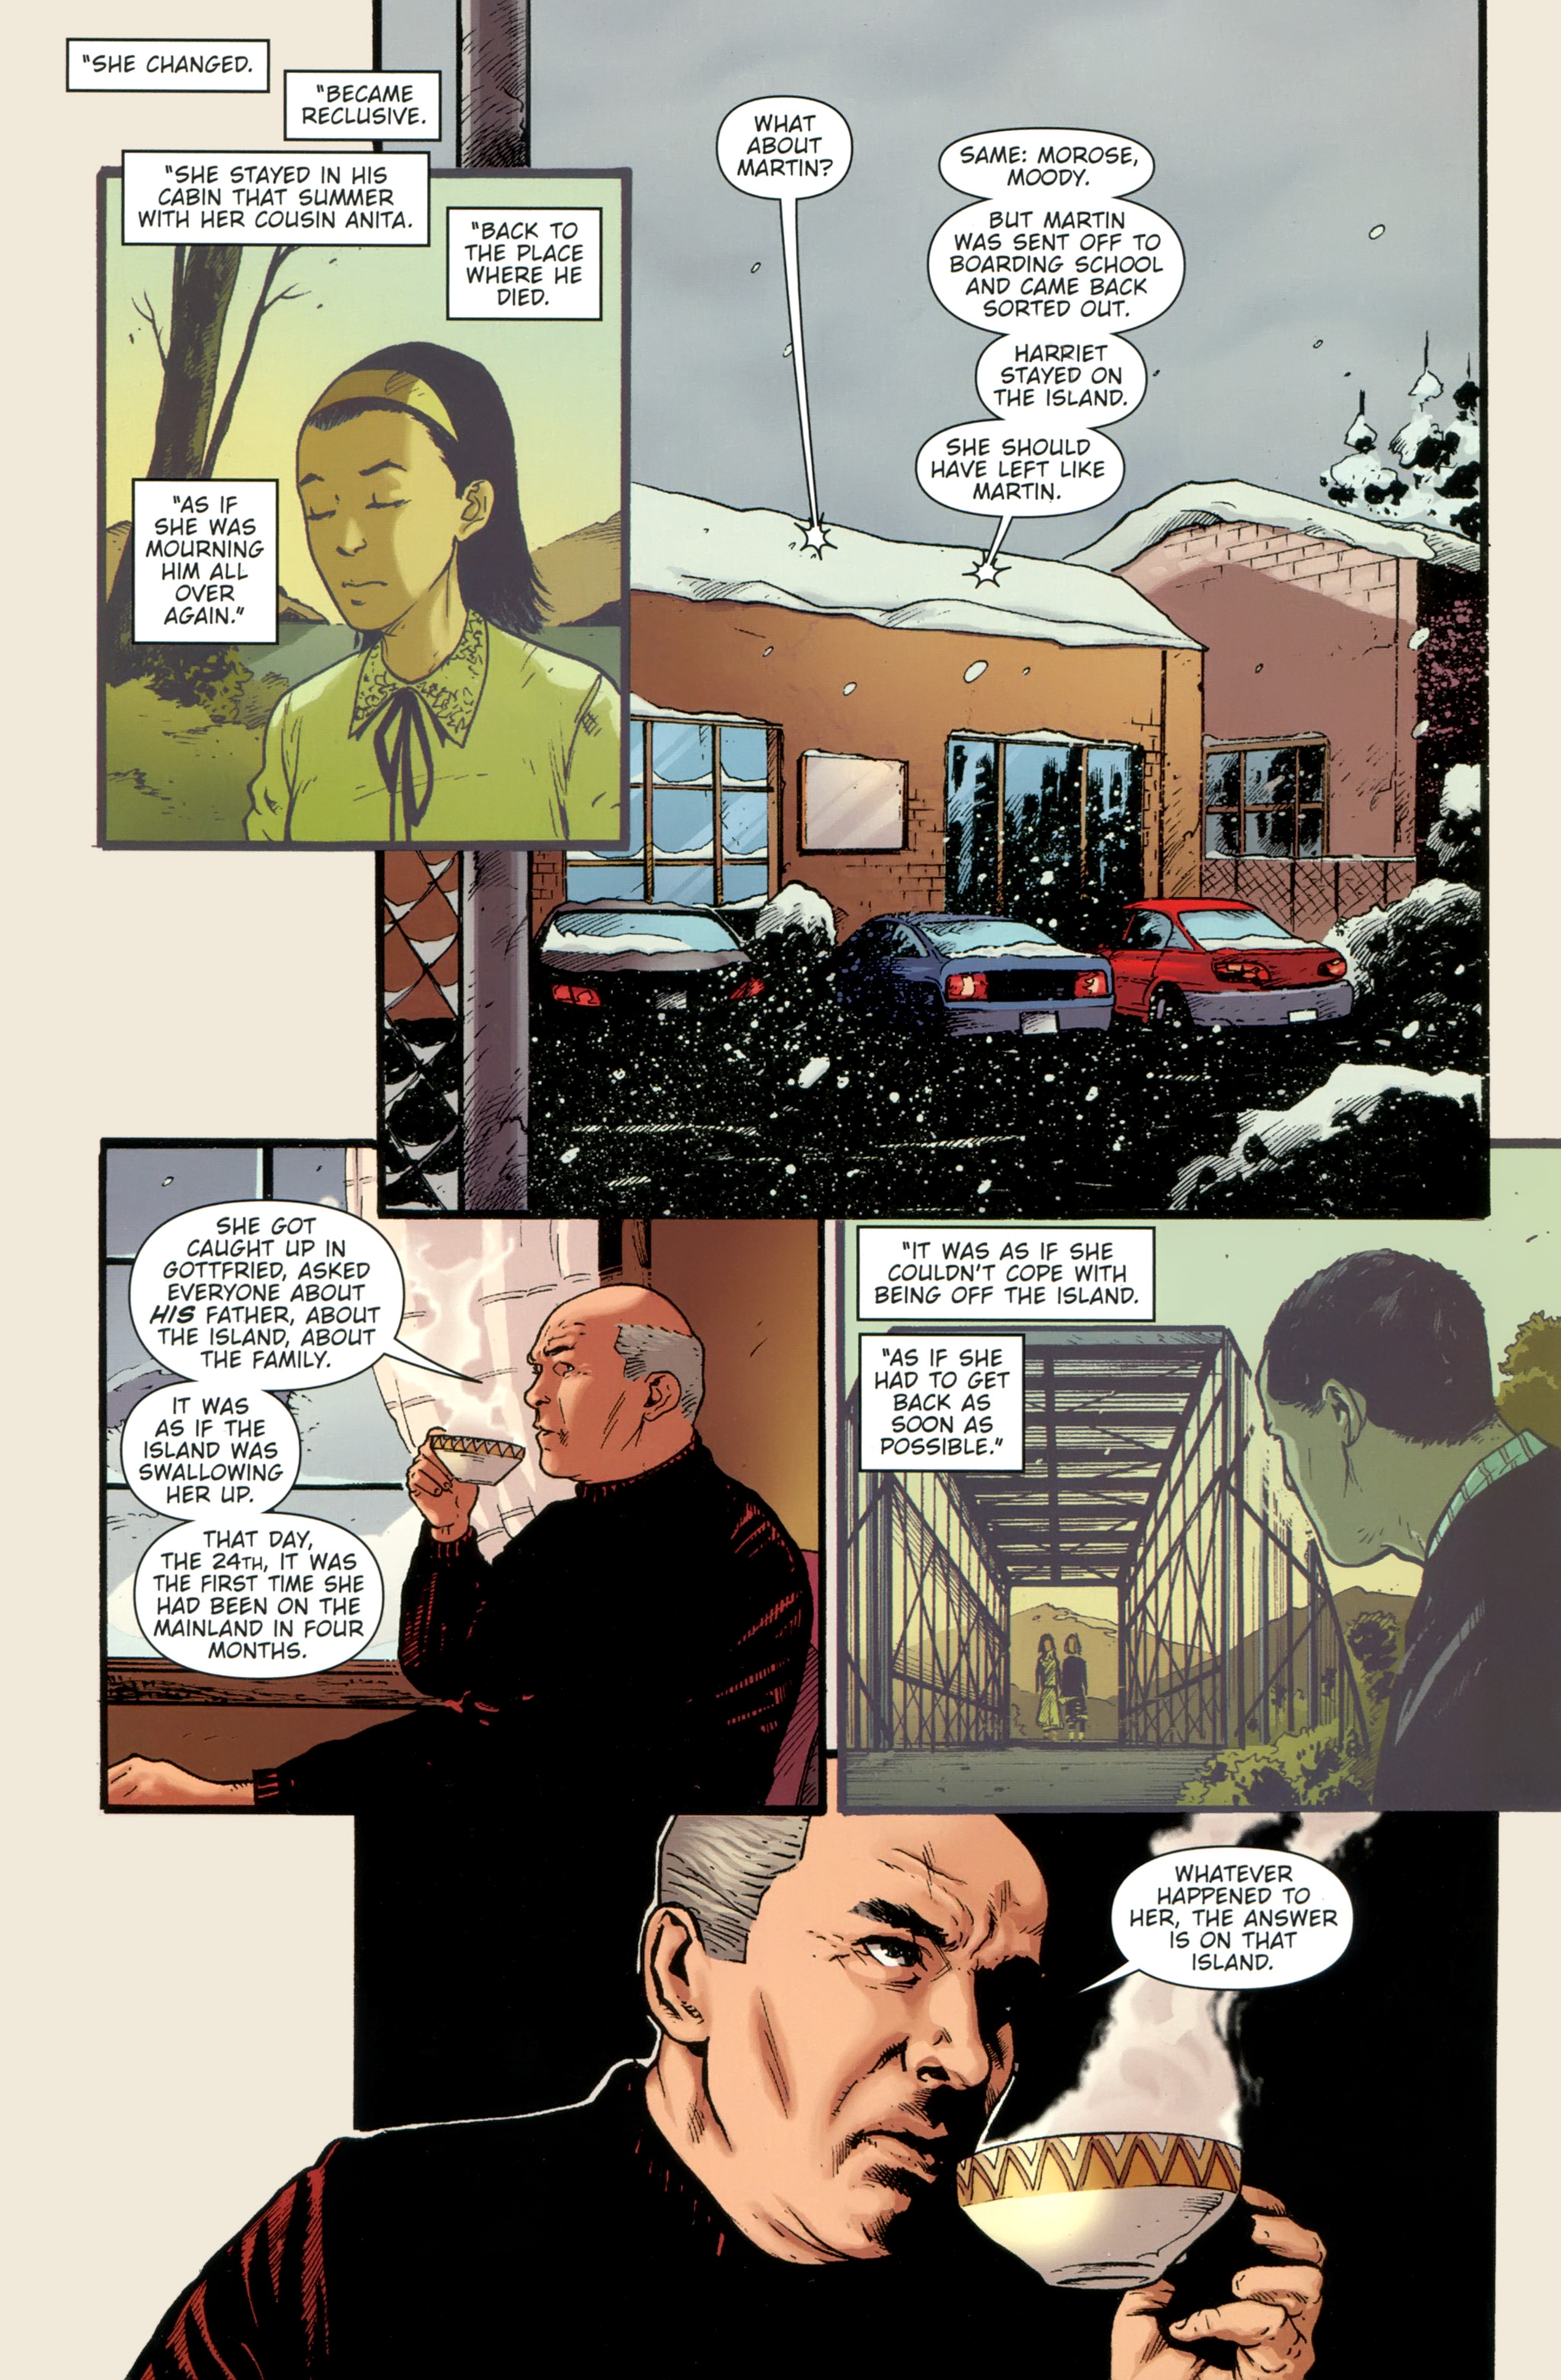 Read online The Girl With the Dragon Tattoo comic -  Issue # TPB 1 - 111